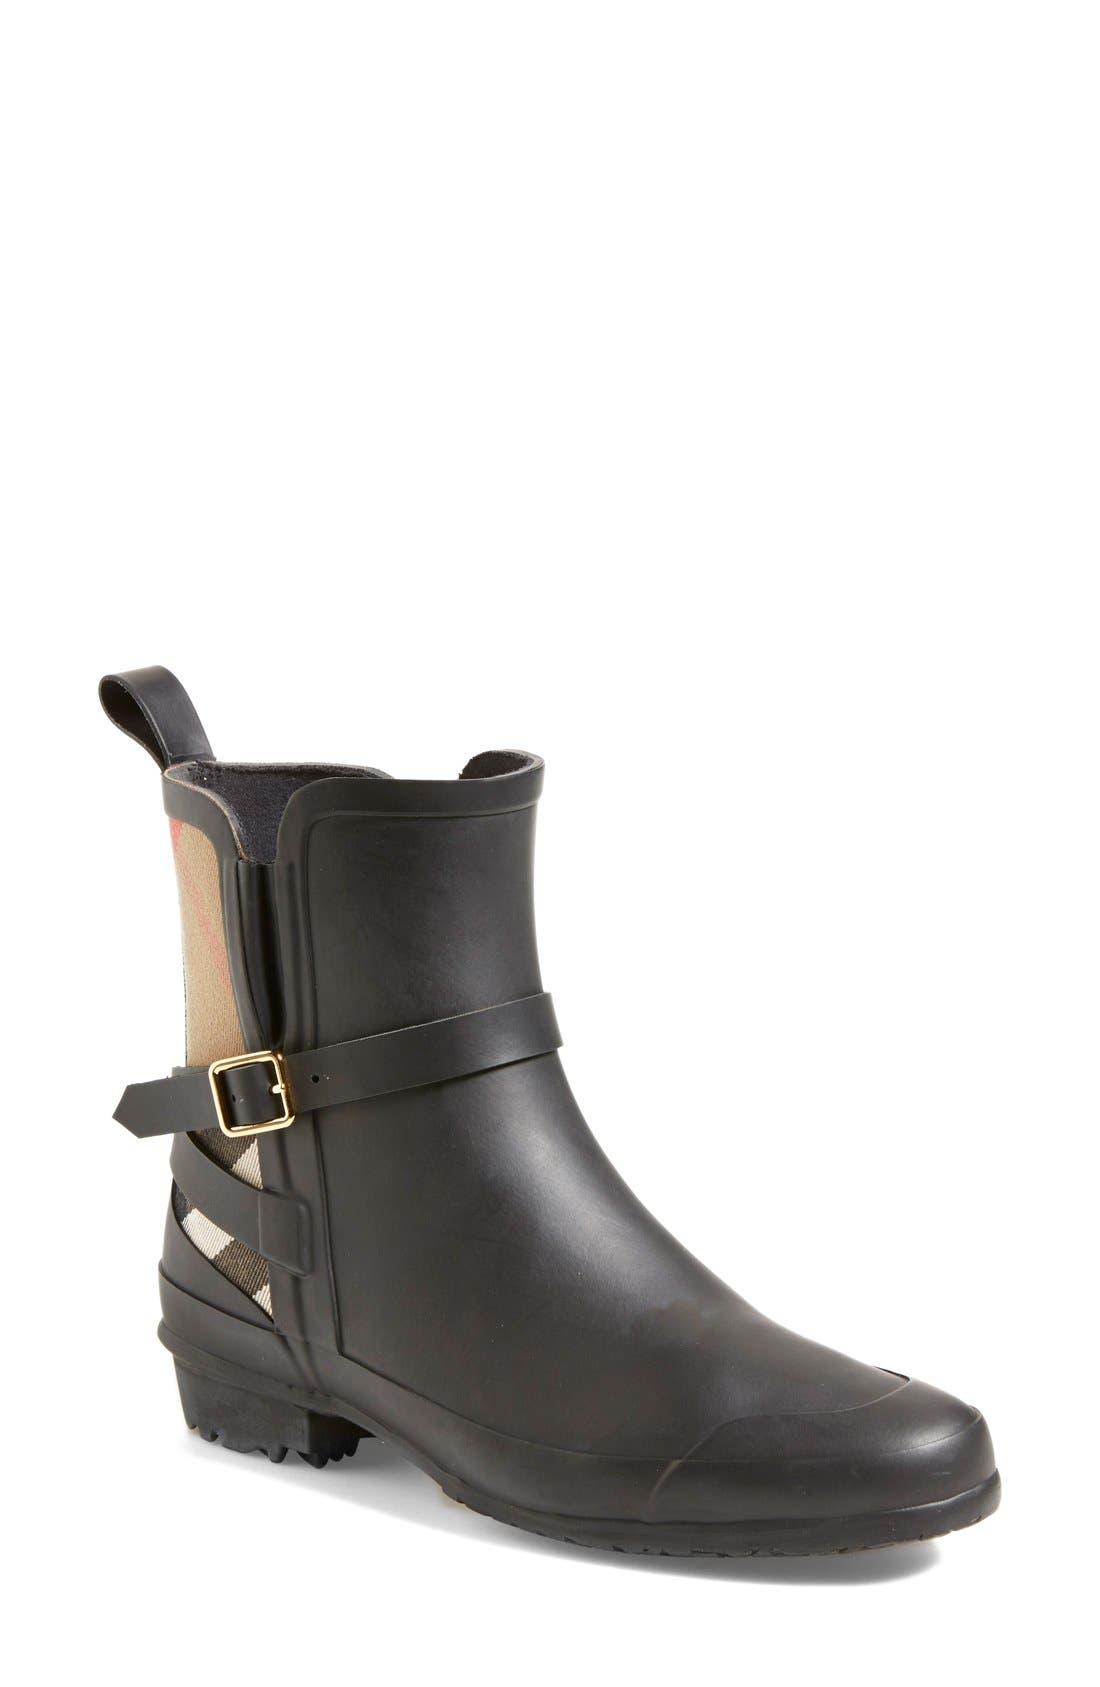 Alternate Image 1 Selected - Burberry 'Riddlestone' Rain Boot (Women)